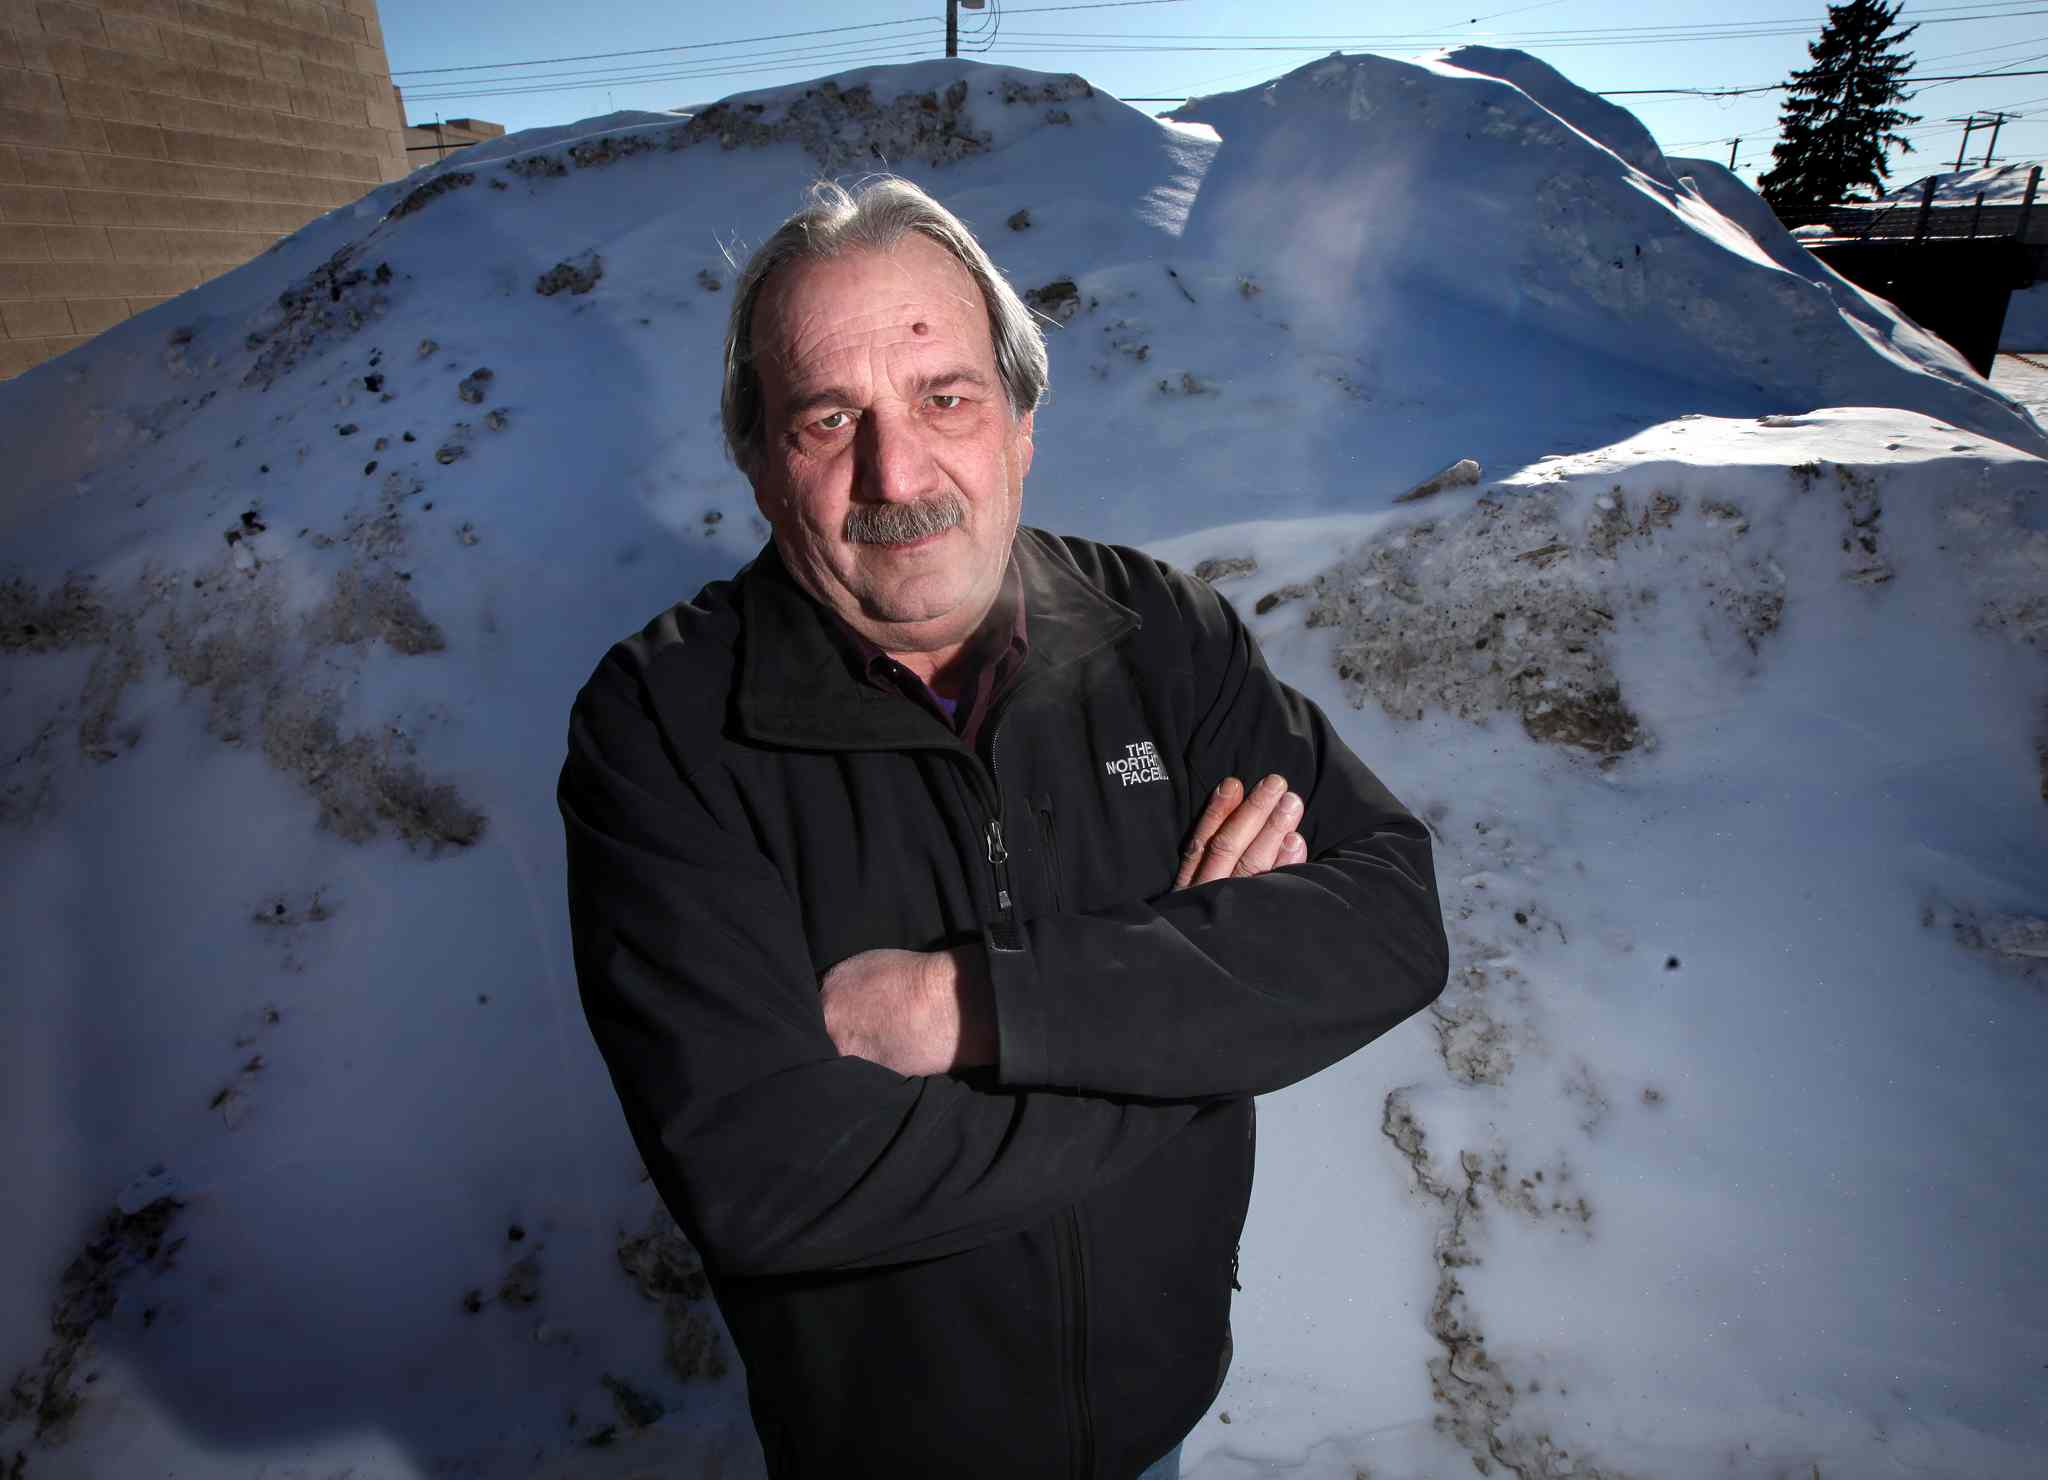 Gino Riccio poses in front of the evidence: he caught city snow clearing crews dumping snow in his parking lot and has them on surveillance tape.